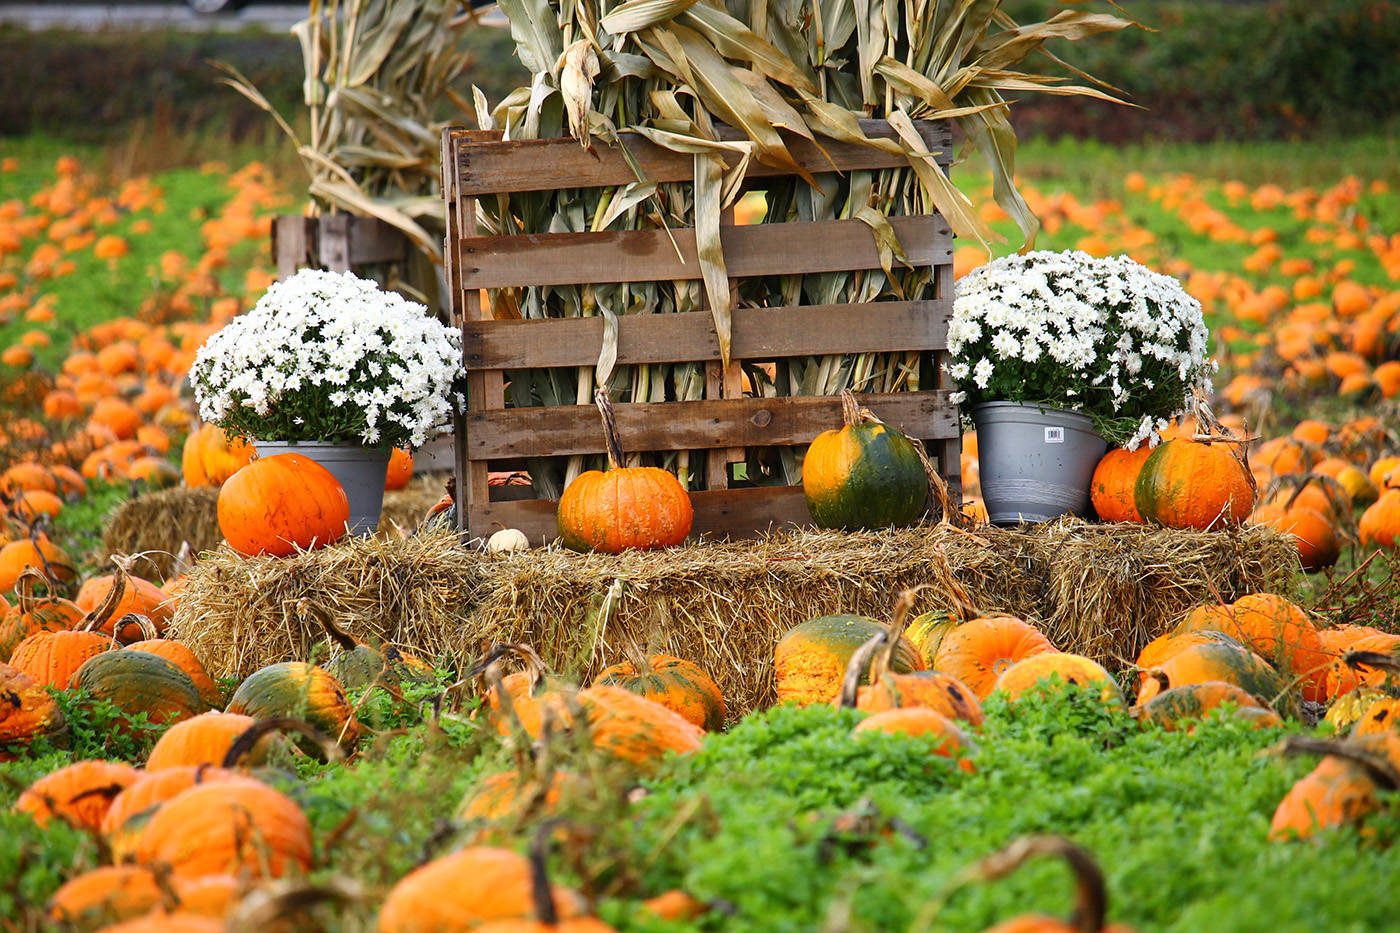 Michell's Farm pick a pumpkin is a popular spot to snap a photo, especially in the fall. (Carolyn Brooks photo)